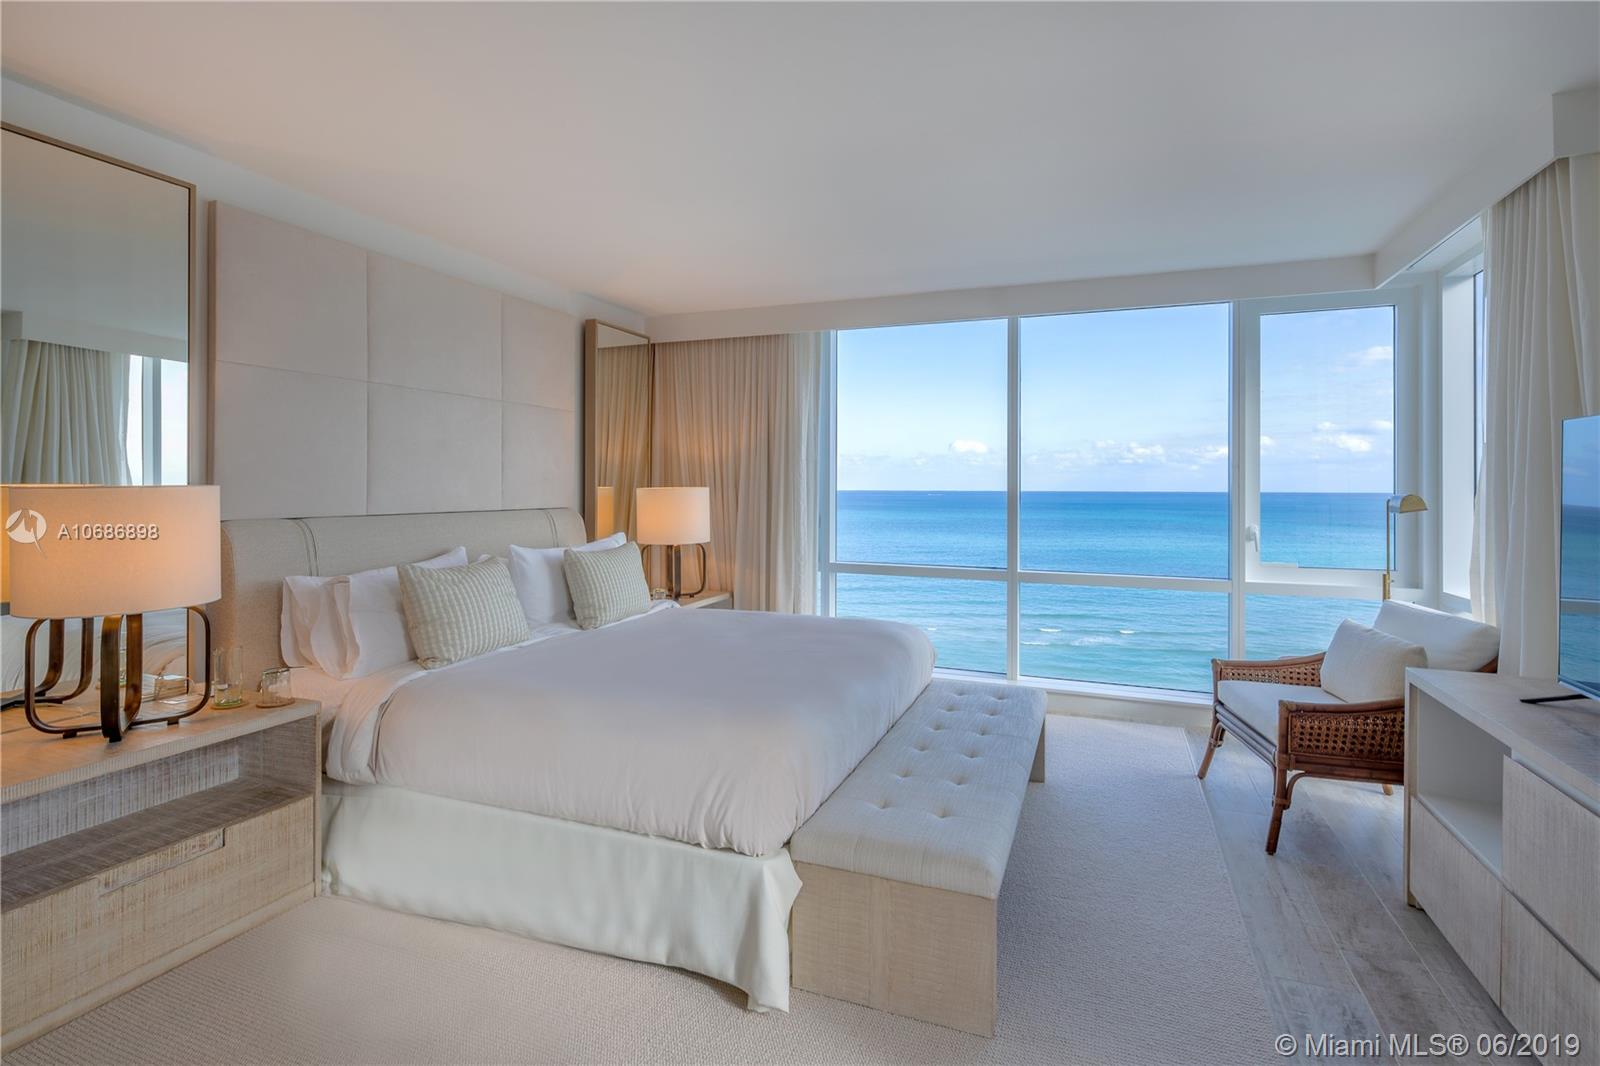 Enjoy direct ocean views from this gorgeous 2 bedroom condo with 1,481 Sq. Ft. of living space. Comes with the custom hotel furniture package designed by acclaimed Brazilian interior decorator Debra Aguiar. Guests have access to a variety of white glove services including a private fully-staffed residence lobby, valet attendants, personal concierge, chauffeured Tesla sedans, the hotels 5 star luxurious and chic eco-conscious amenities. Rental includes linens and towels, Toiletries, dishes, pots and pans, daily coffee and tea, full use of all the hotel amenities to include 4 pools, 4 restaurants, 3 bars, 14,000 sq, ft, spa and hair salon, Soul Cycle, chauffeured Teslas, and much more. Available for daily, weekly, monthly and yearly rentals through Five Star Luxury Travel.